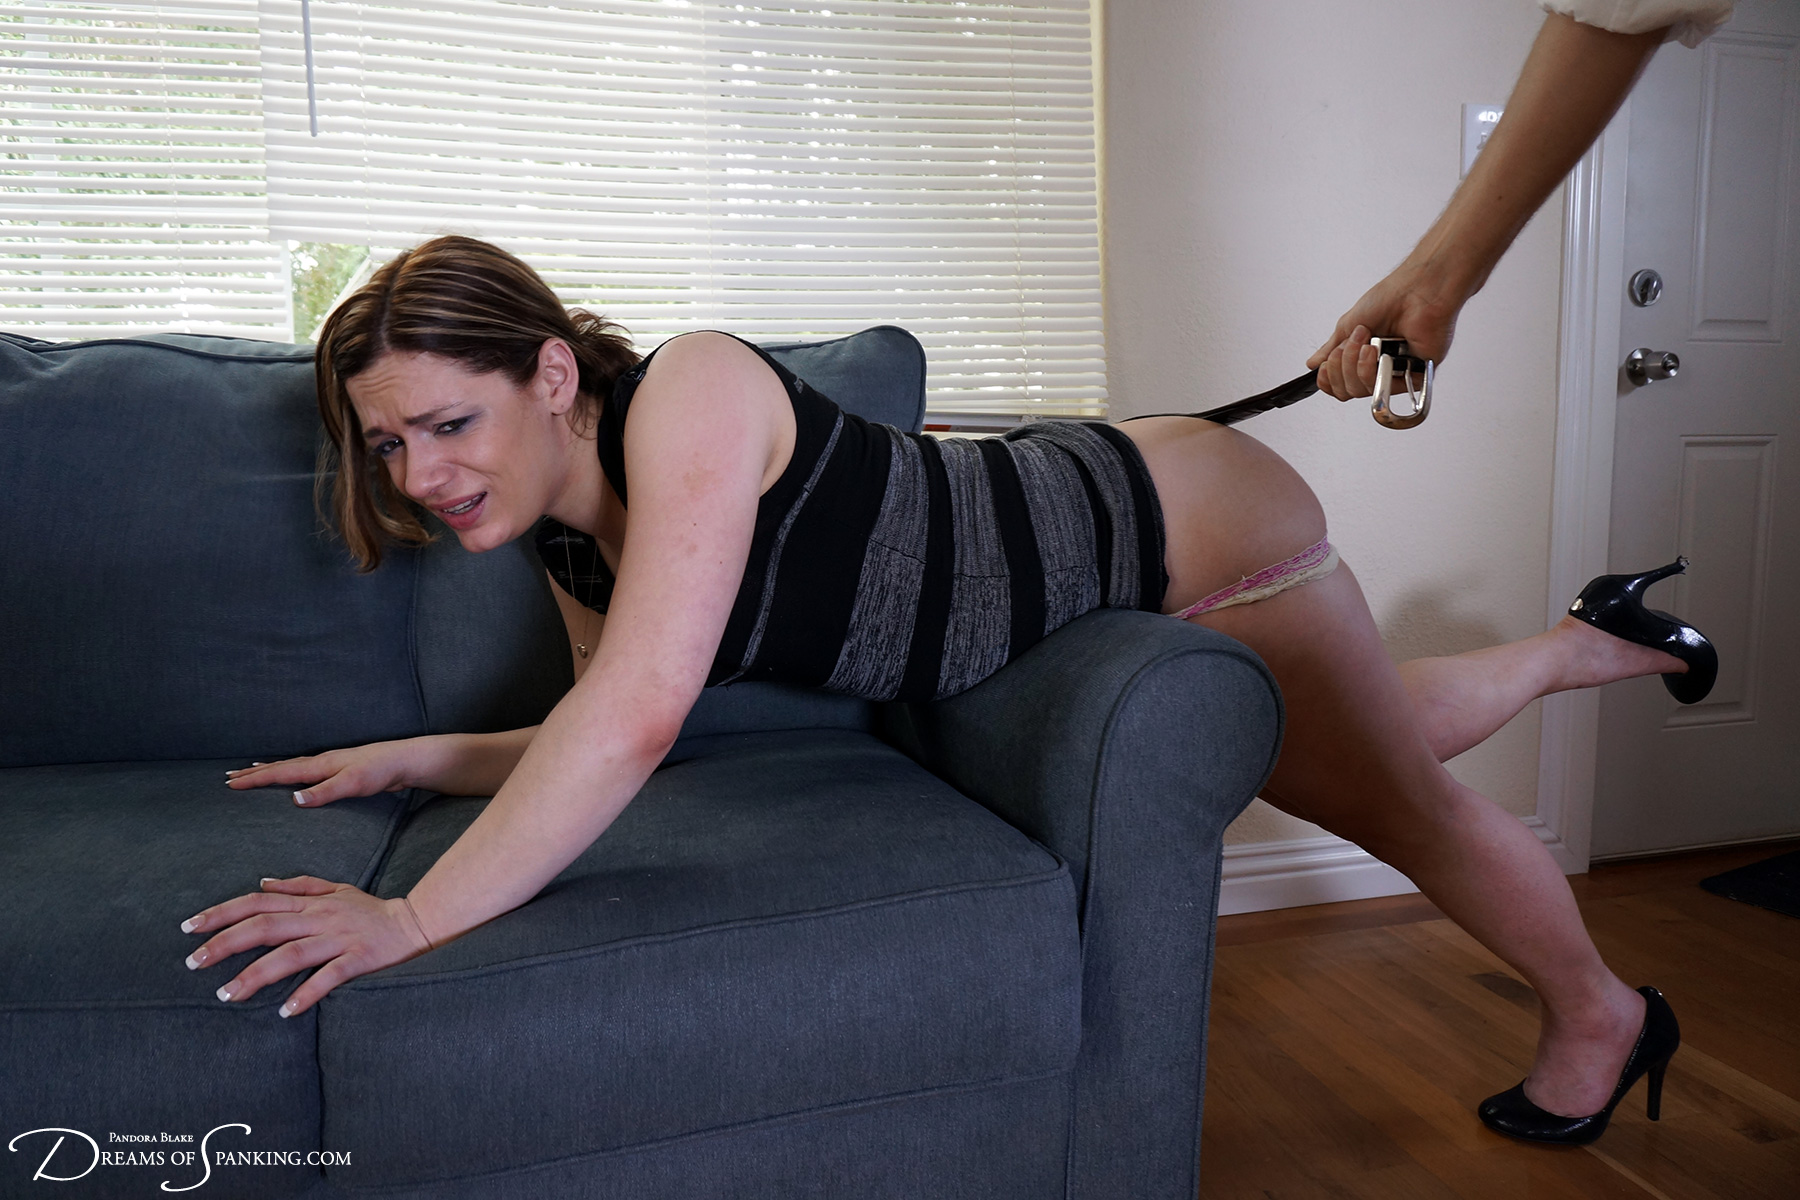 Ten Amorette spanked over the knee and with a belt